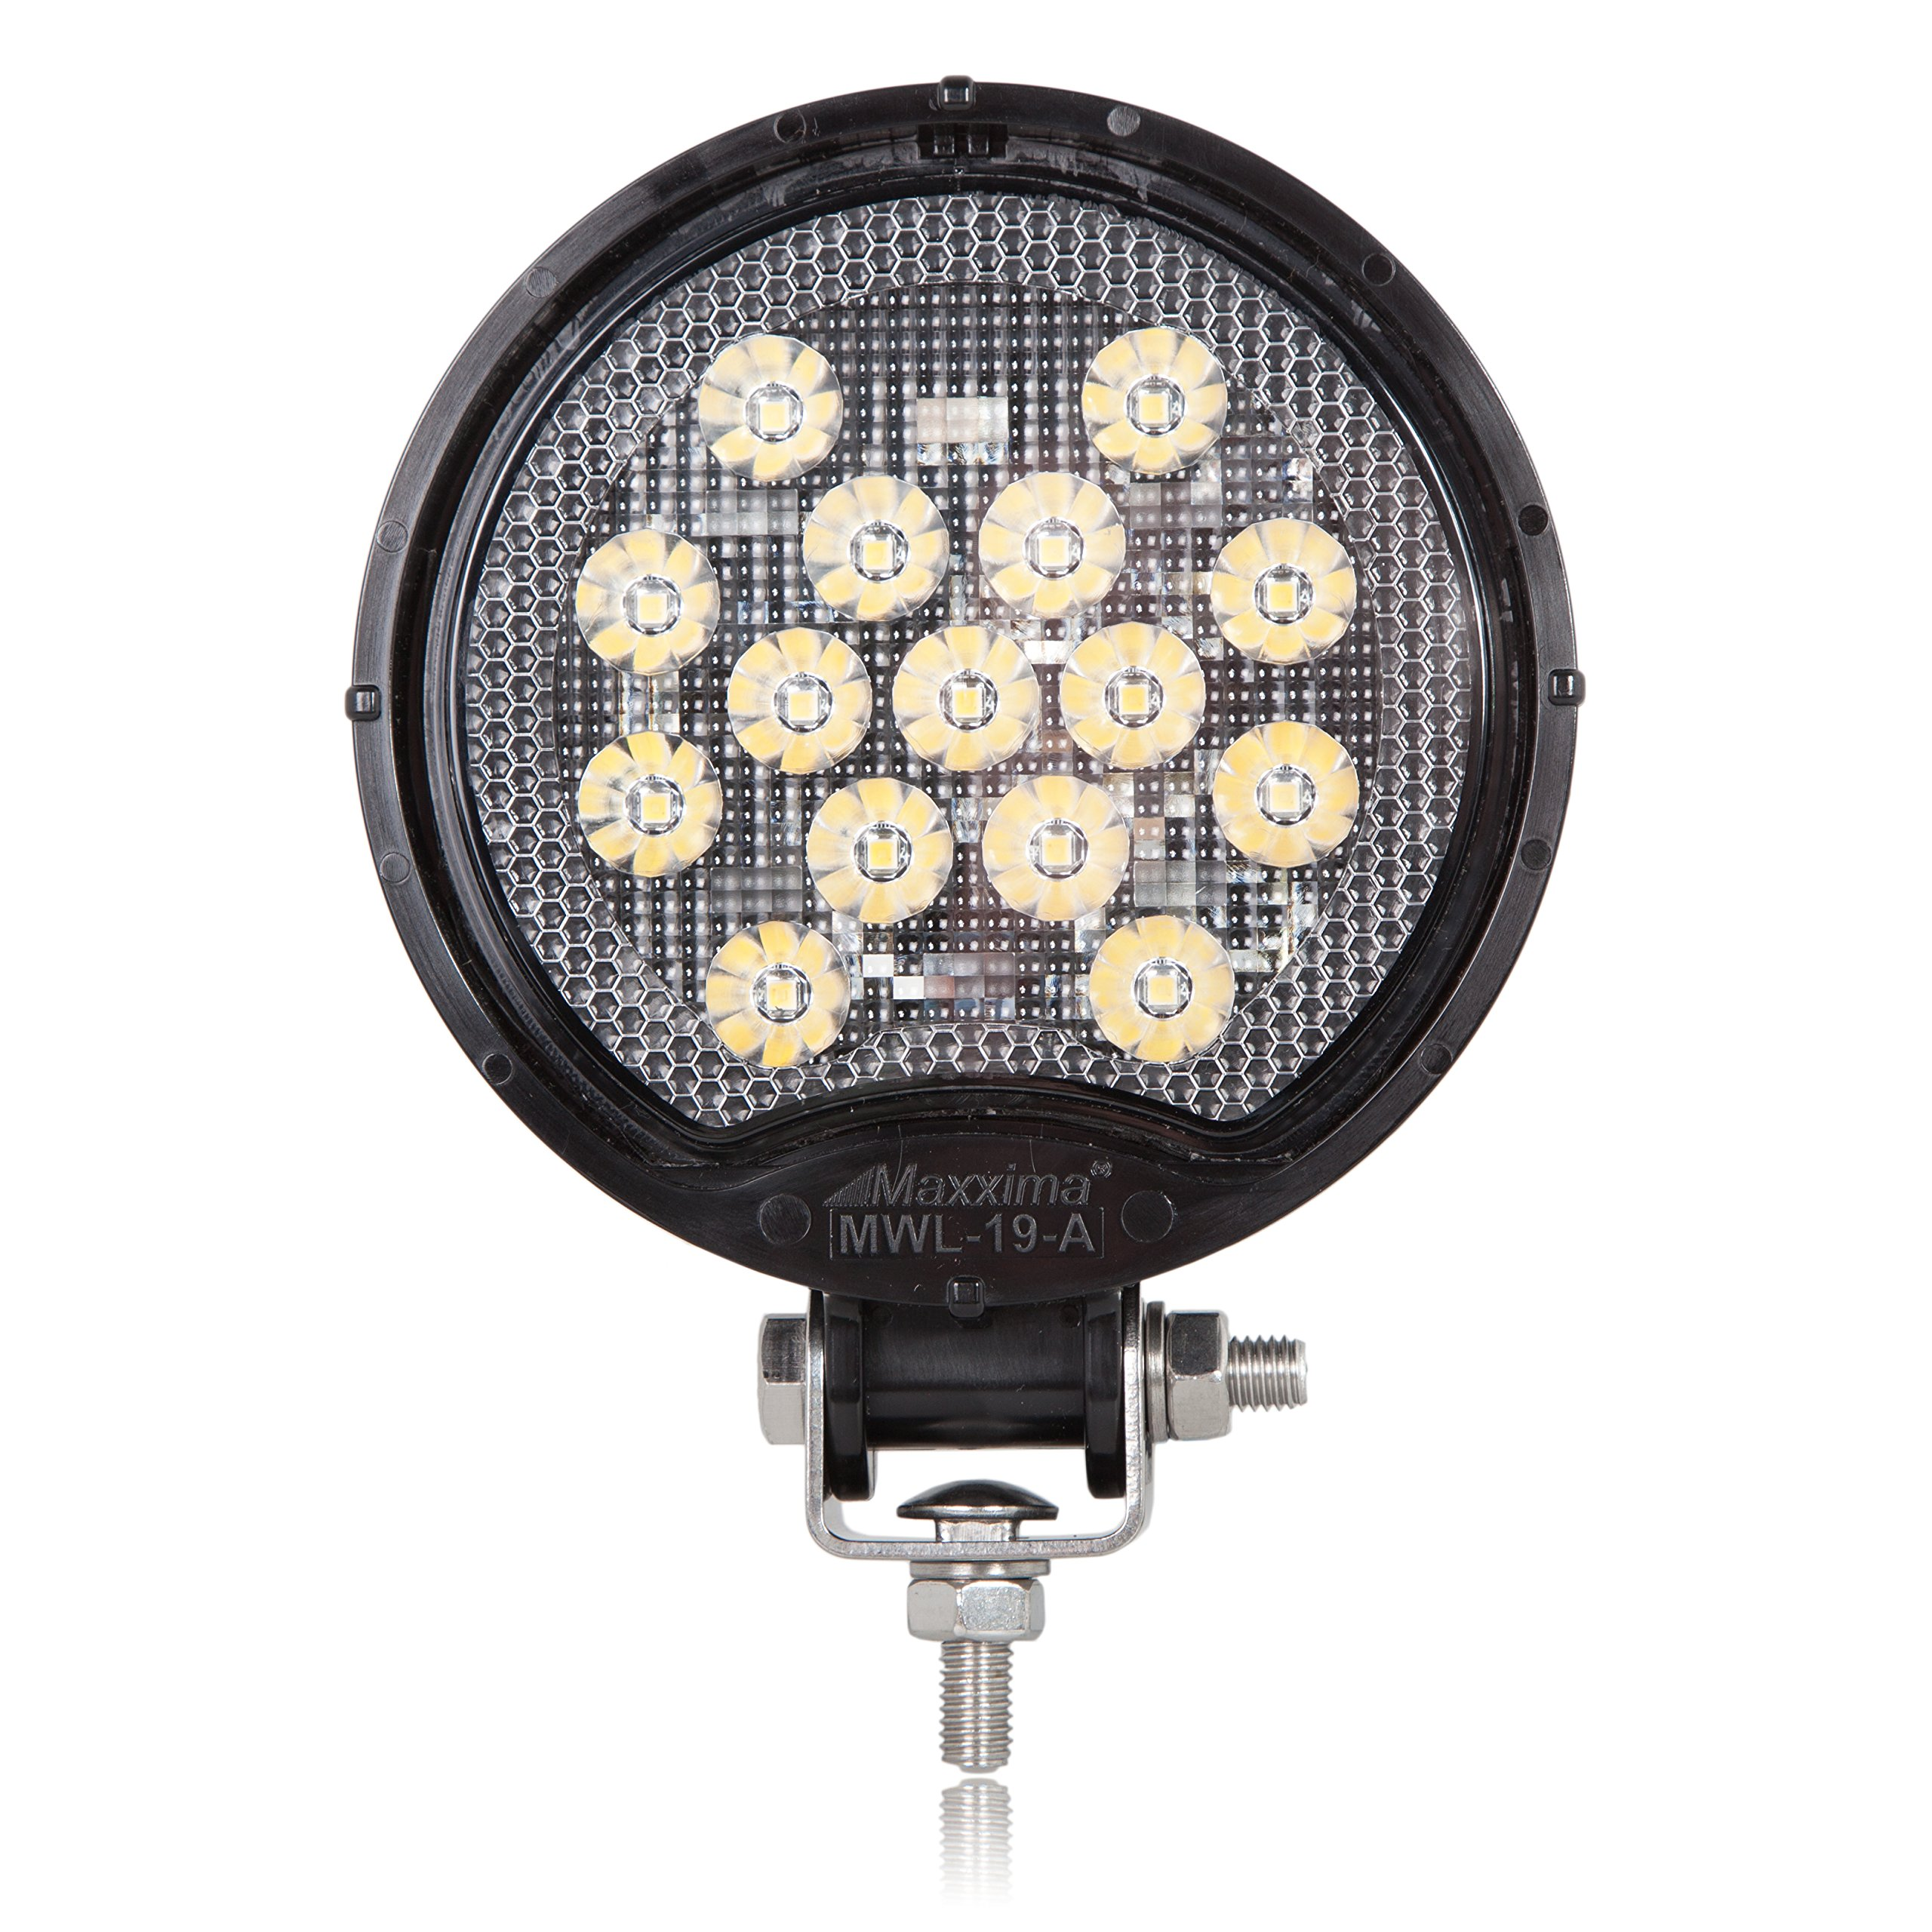 Maxxima MWL-19-A Black Round 15 LED Work Light 550 Lumens by Maxxima